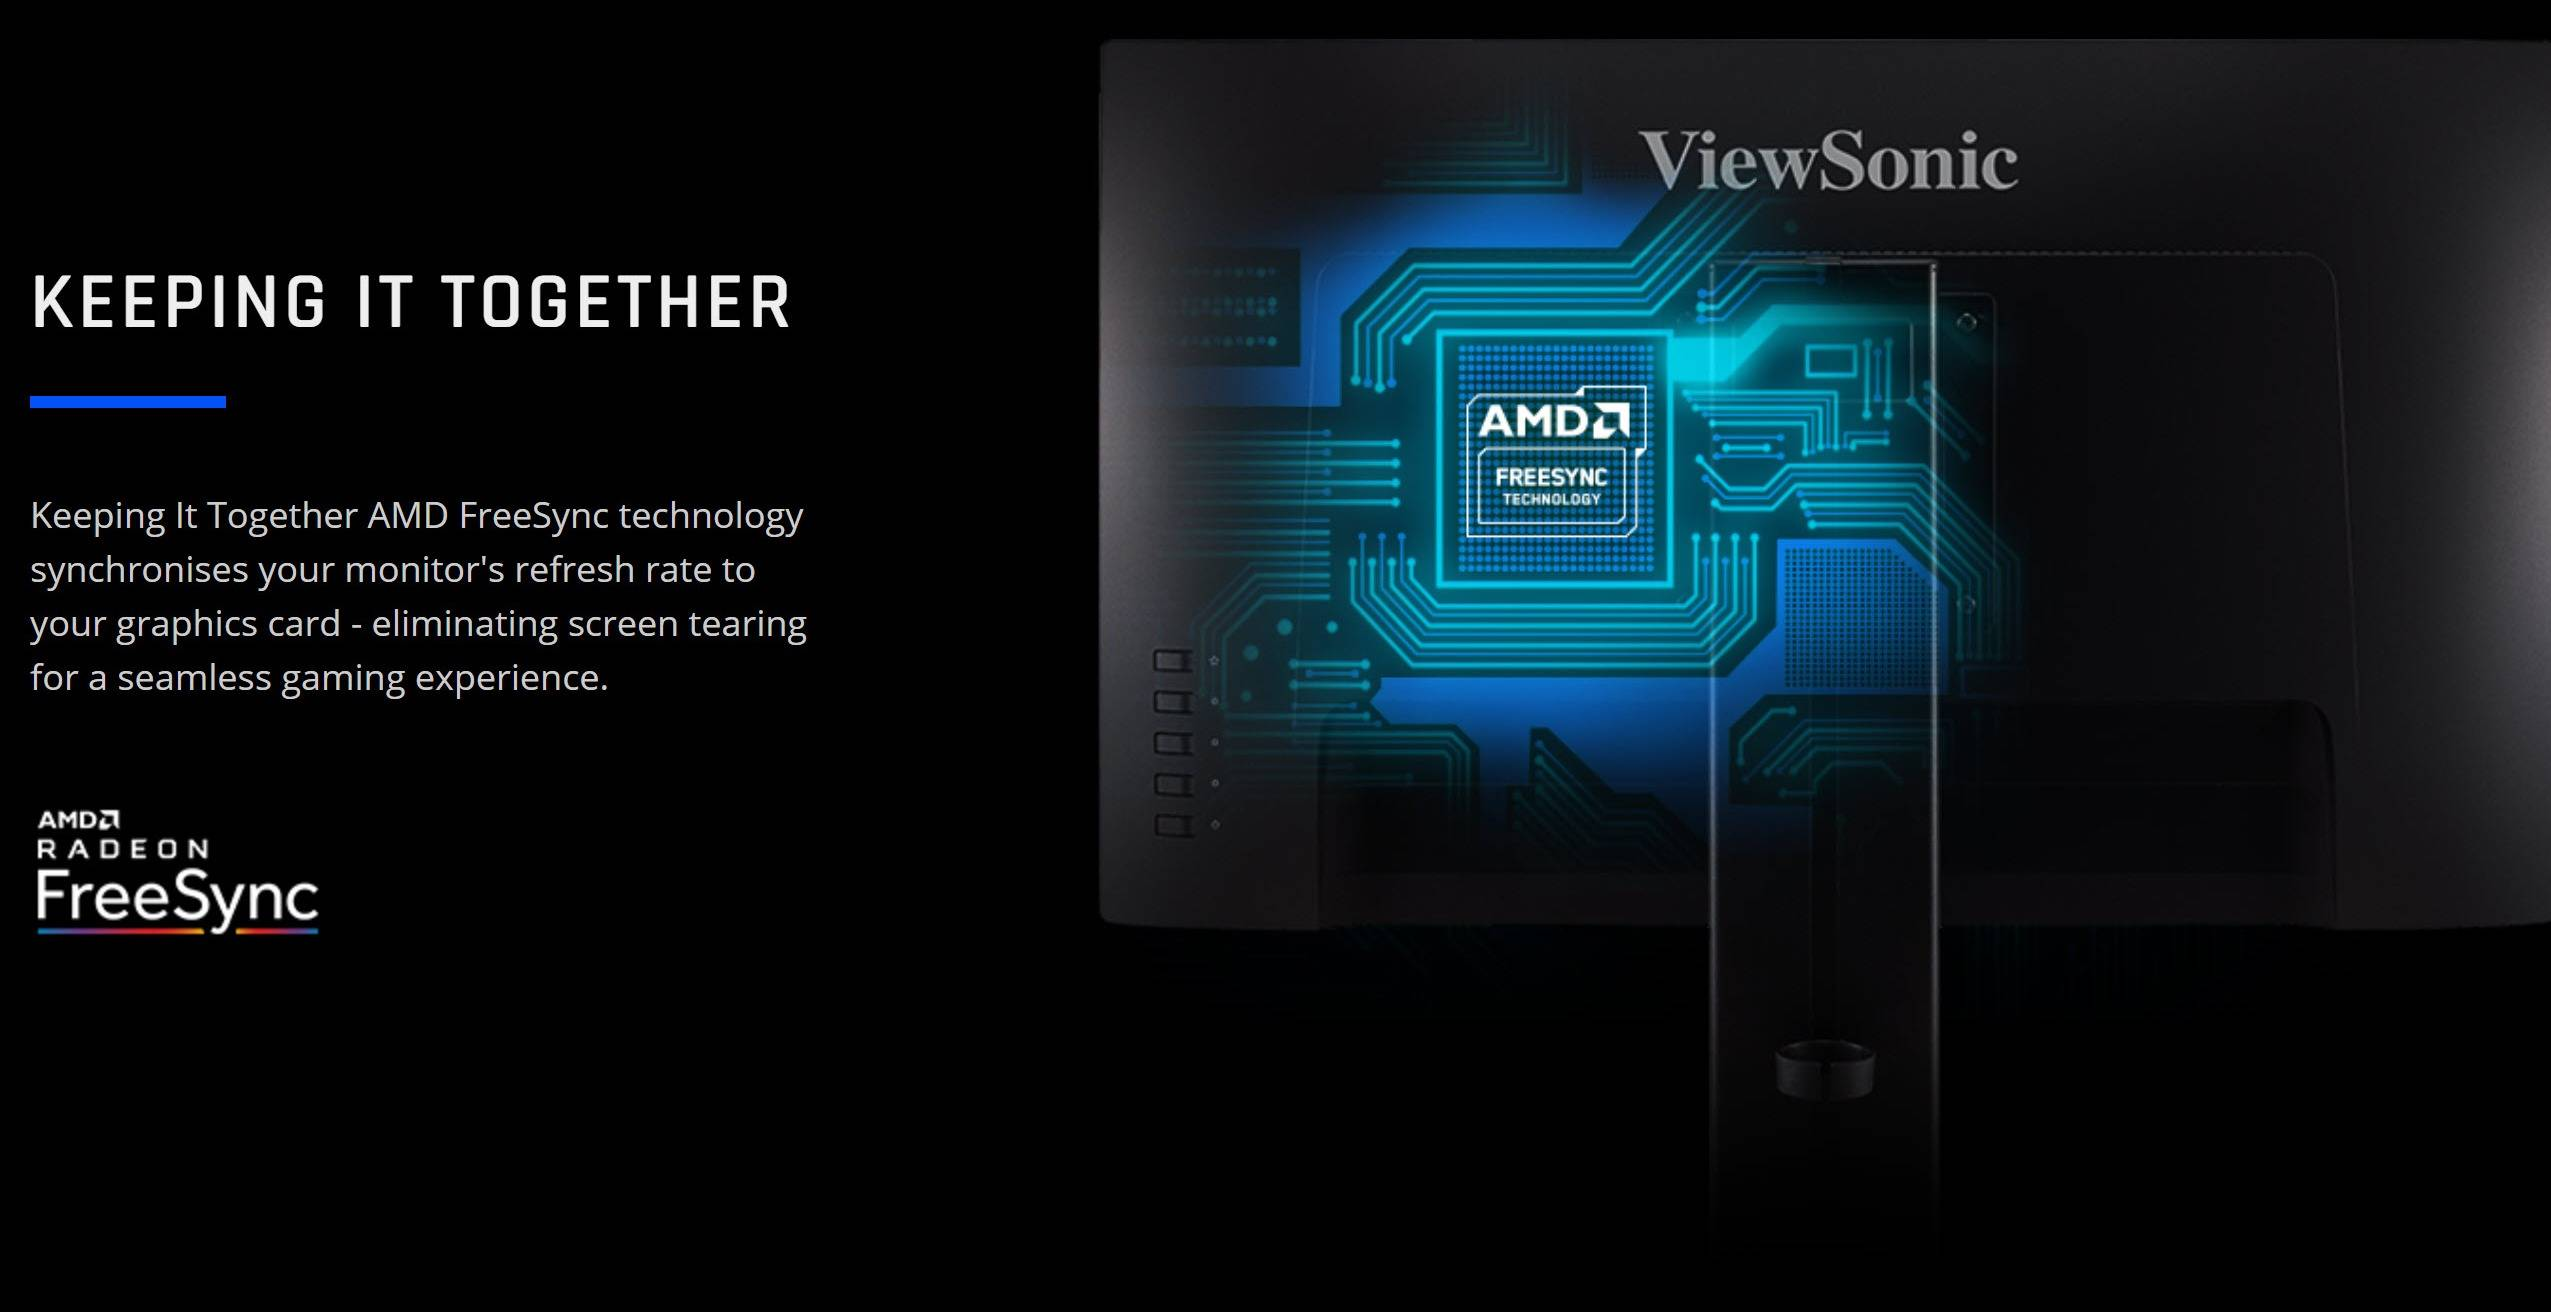 ViewSonic XG2405 Features 12